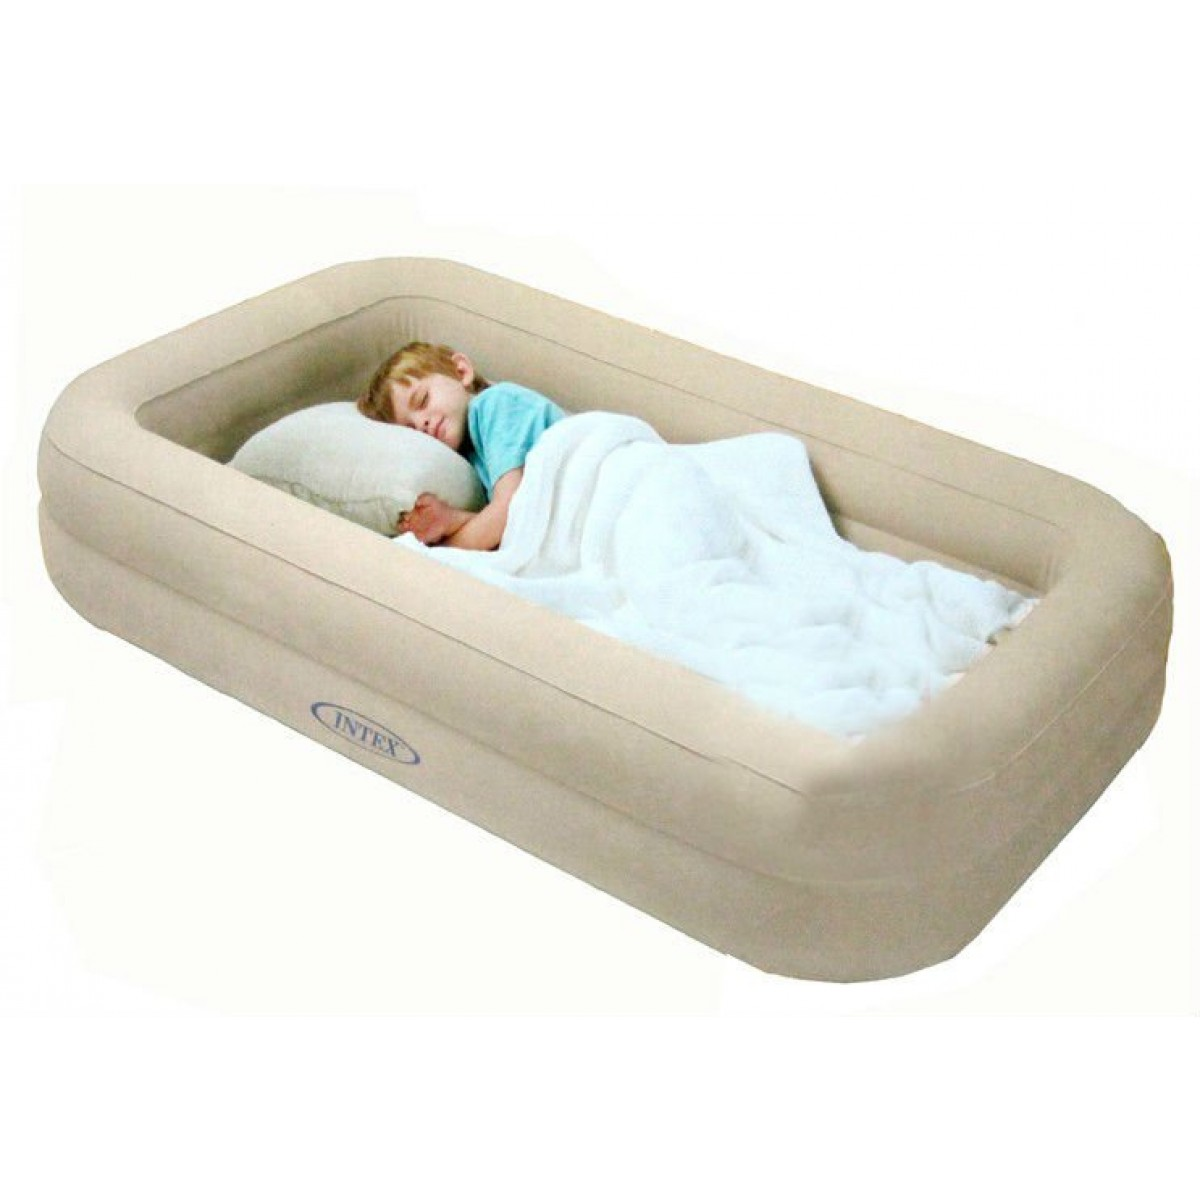 A Travel Bed For Kid With Deeper Sleeping Area